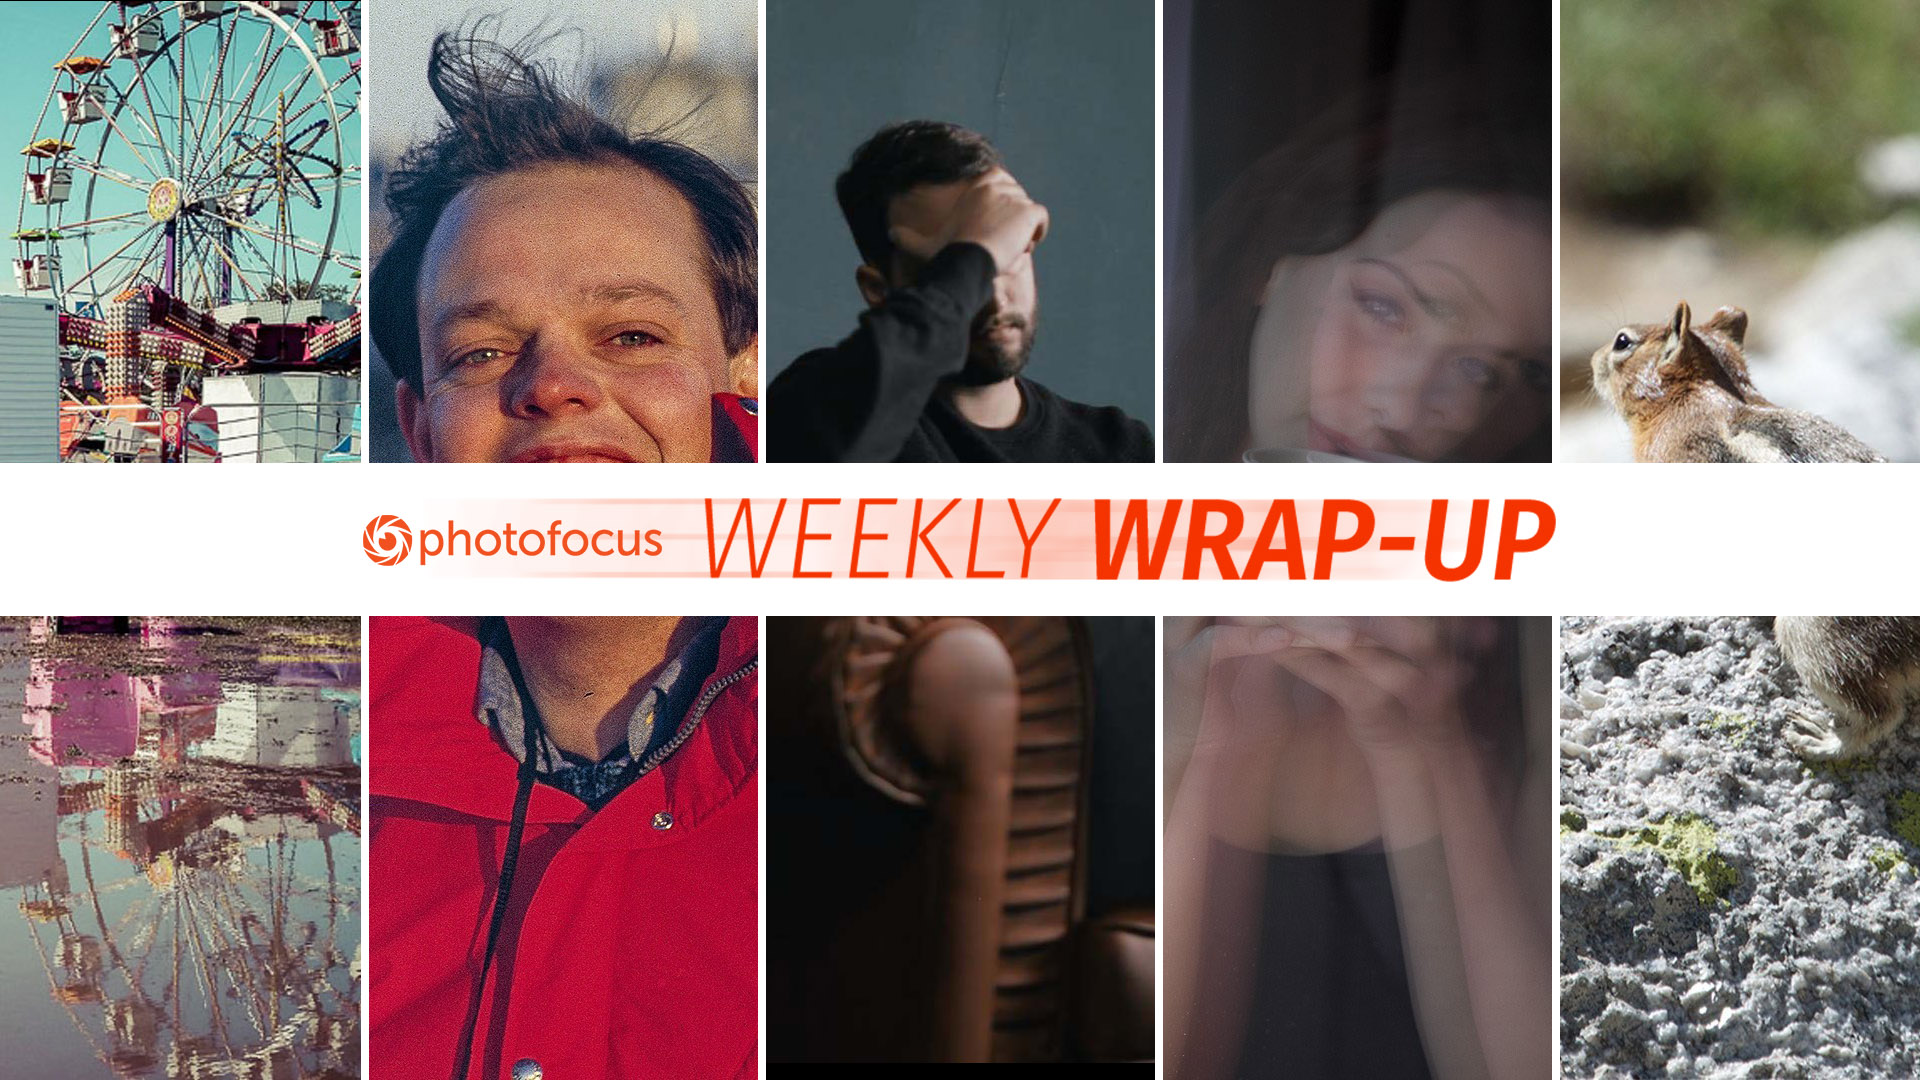 The Weekly Wrap-Up for the week of May 12, 2019